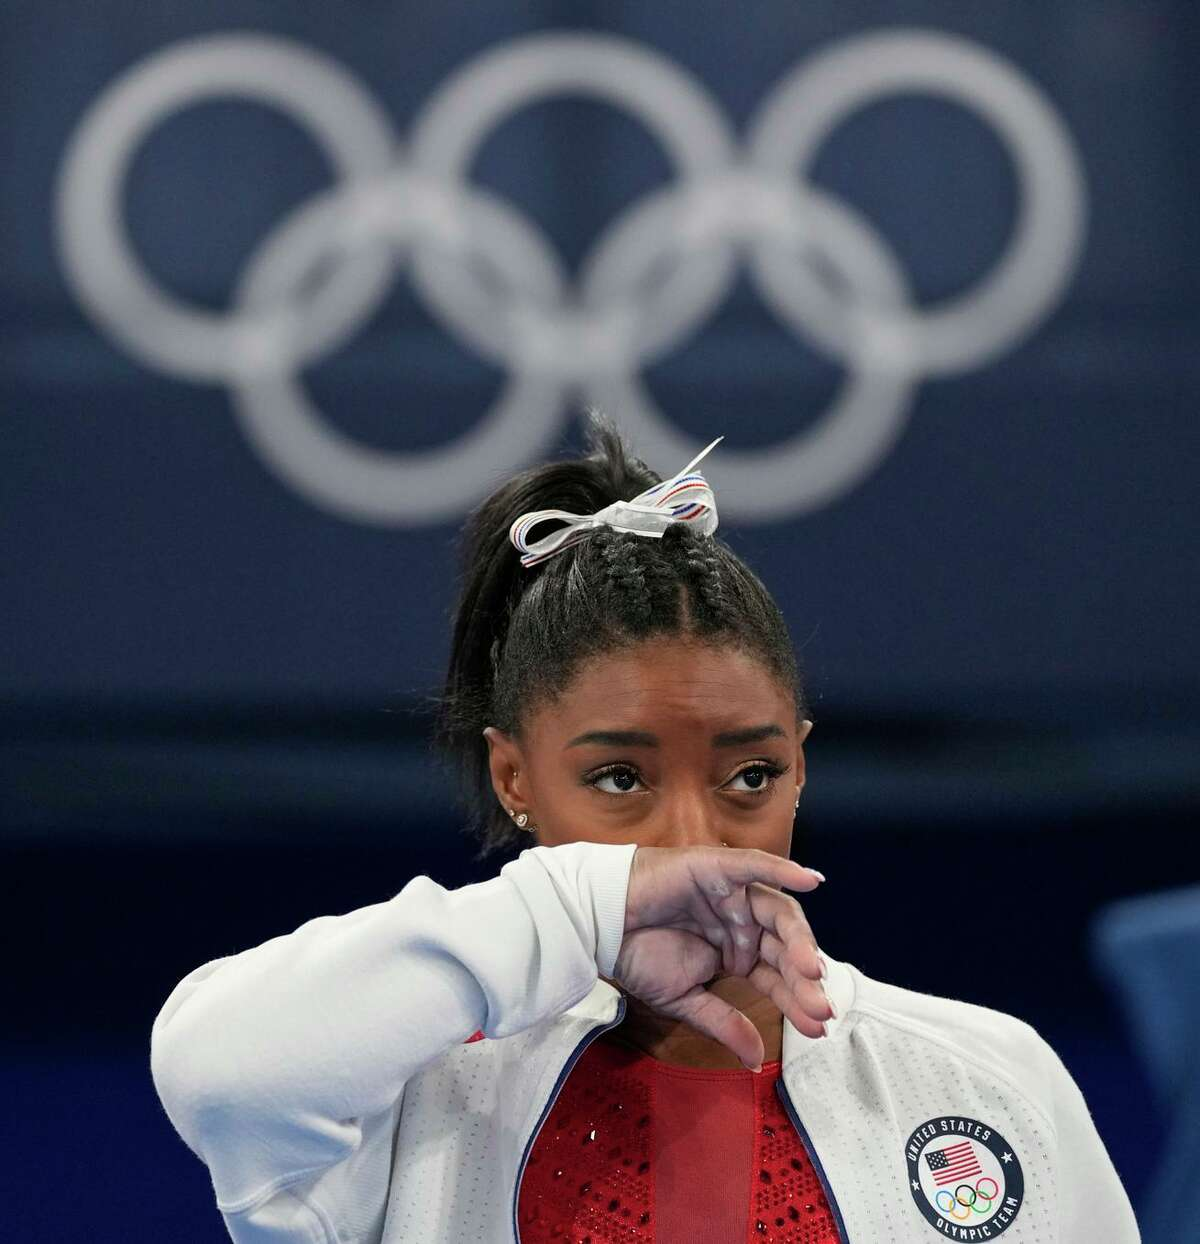 Four-time gold medalist Simone Biles left the women's gymnastics team final at the Tokyo Games because she feared she would get injured in a shaken state of mind.